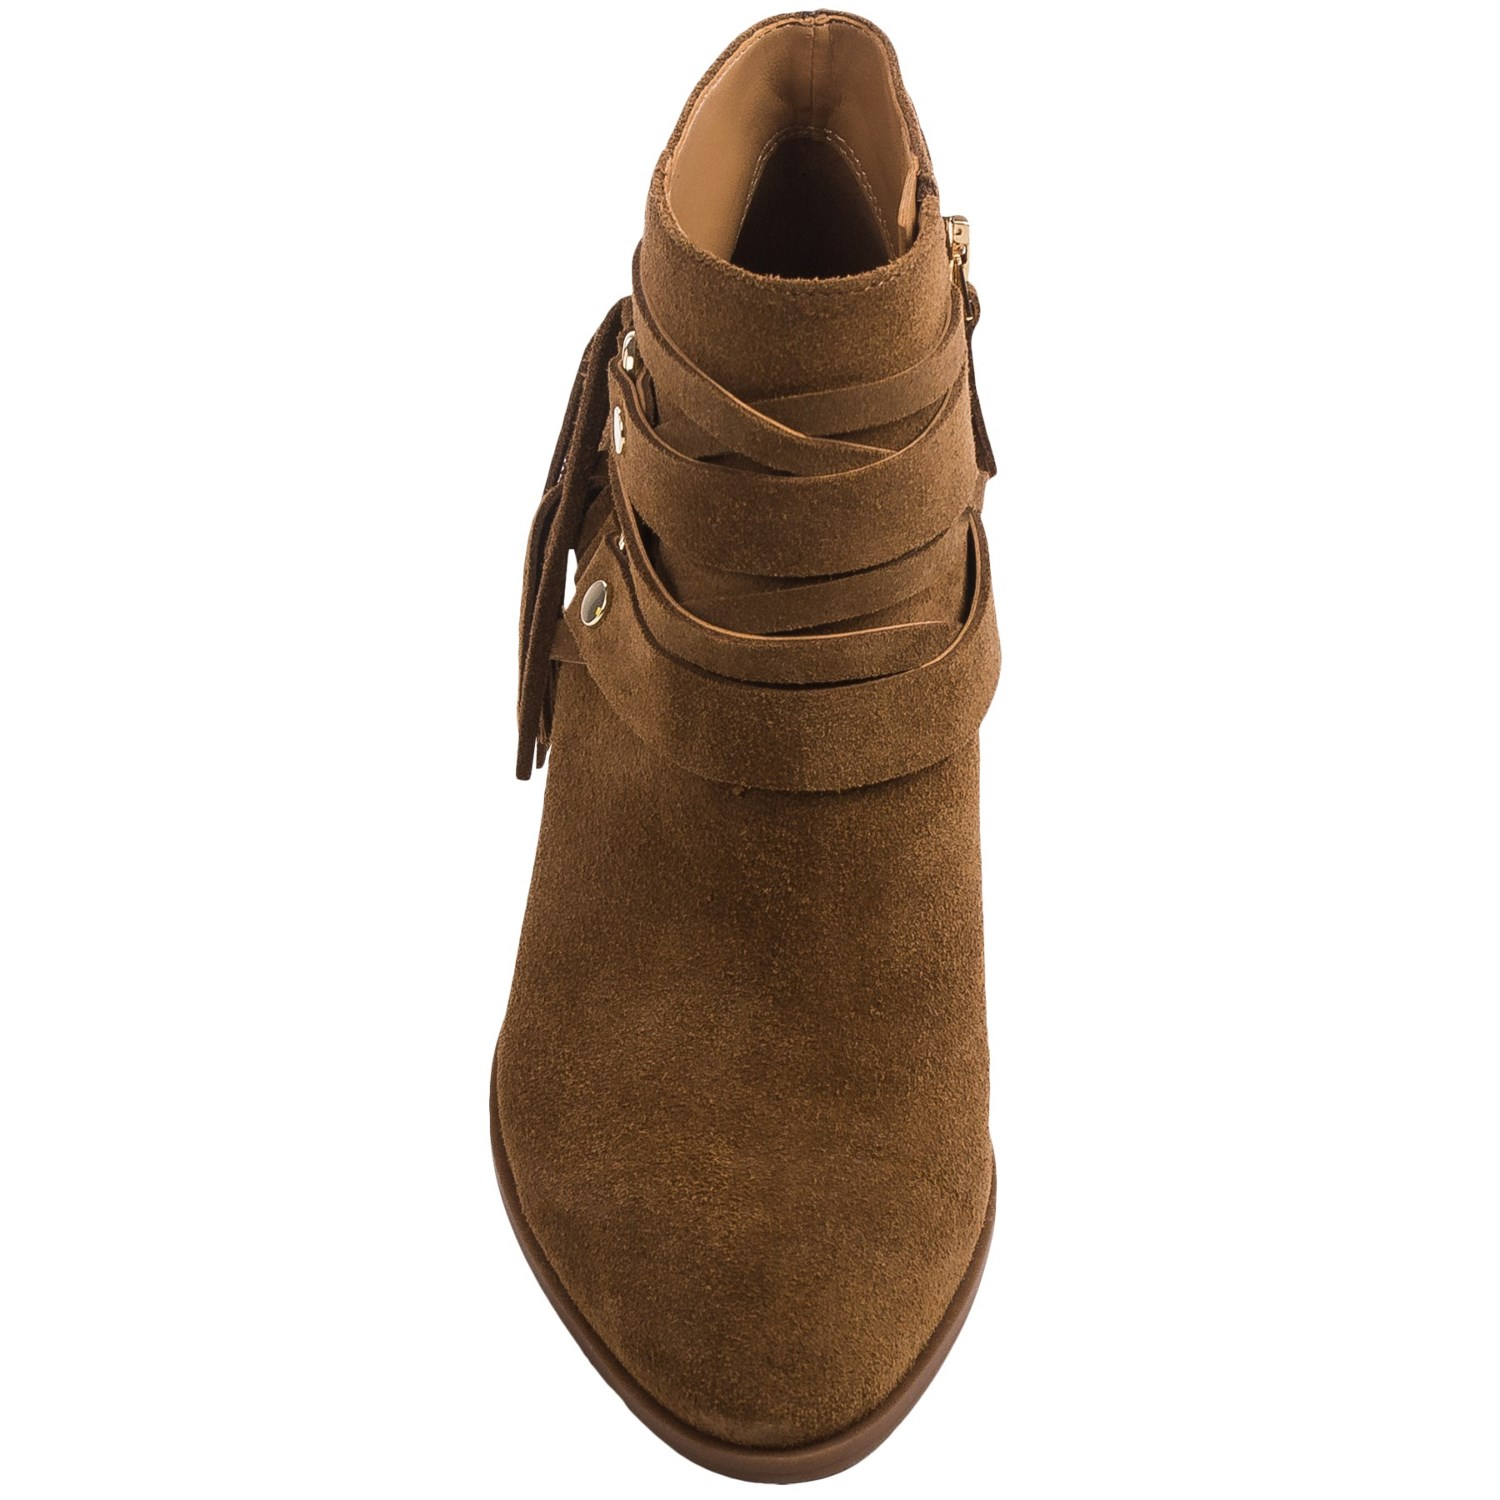 Franco Sarto Gonzalez Western Ankle Boots (For Women) - Save 82%